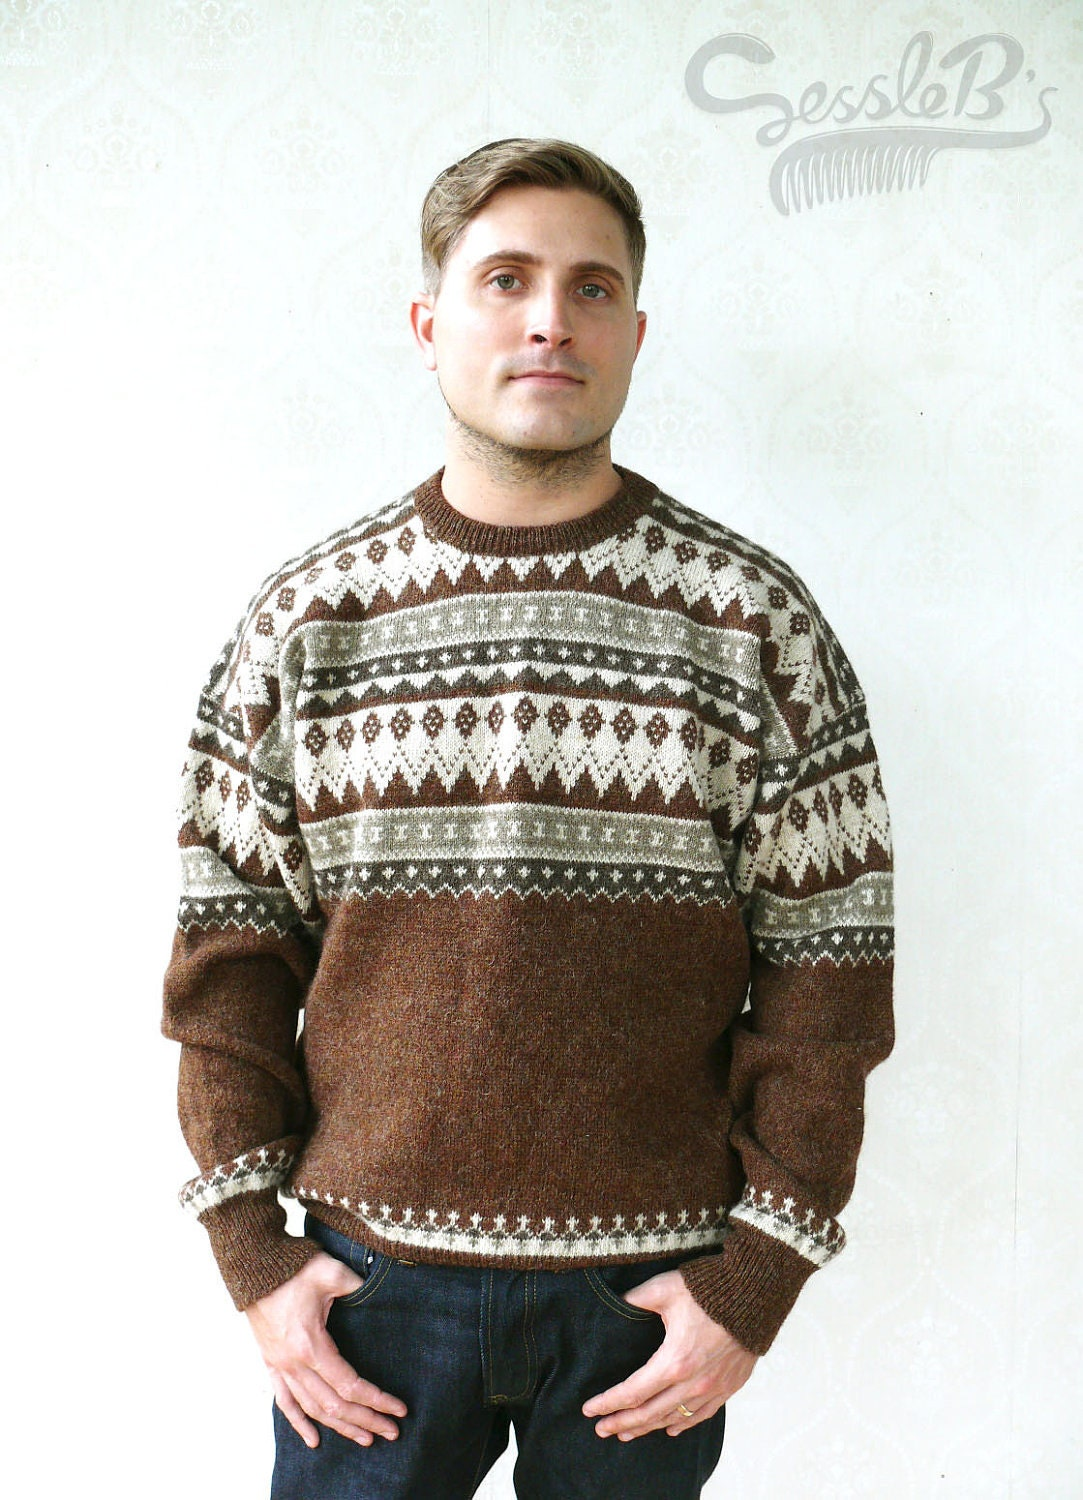 Classic men's vintage sweaters, pullovers, cardigans, and jumpers go in and out of style every winter. Over the decades' sweaters styles have also experienced shifts in popularity with changes in fit, pattern, and colors matching the fashion of the day.